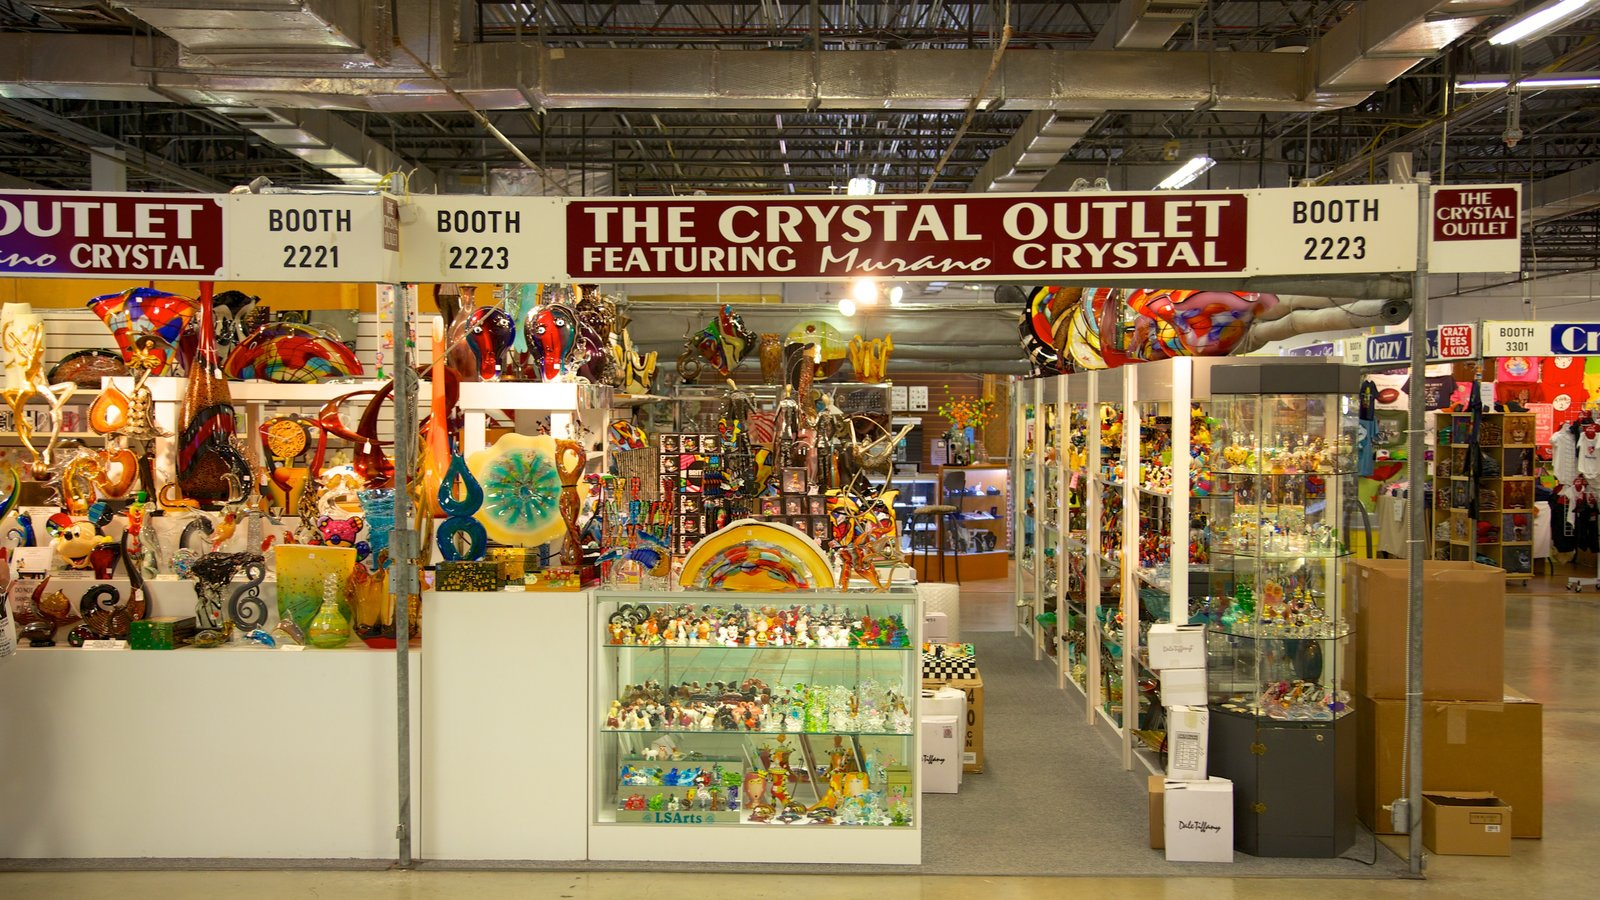 Festival Flea Market which includes interior views, signage and markets